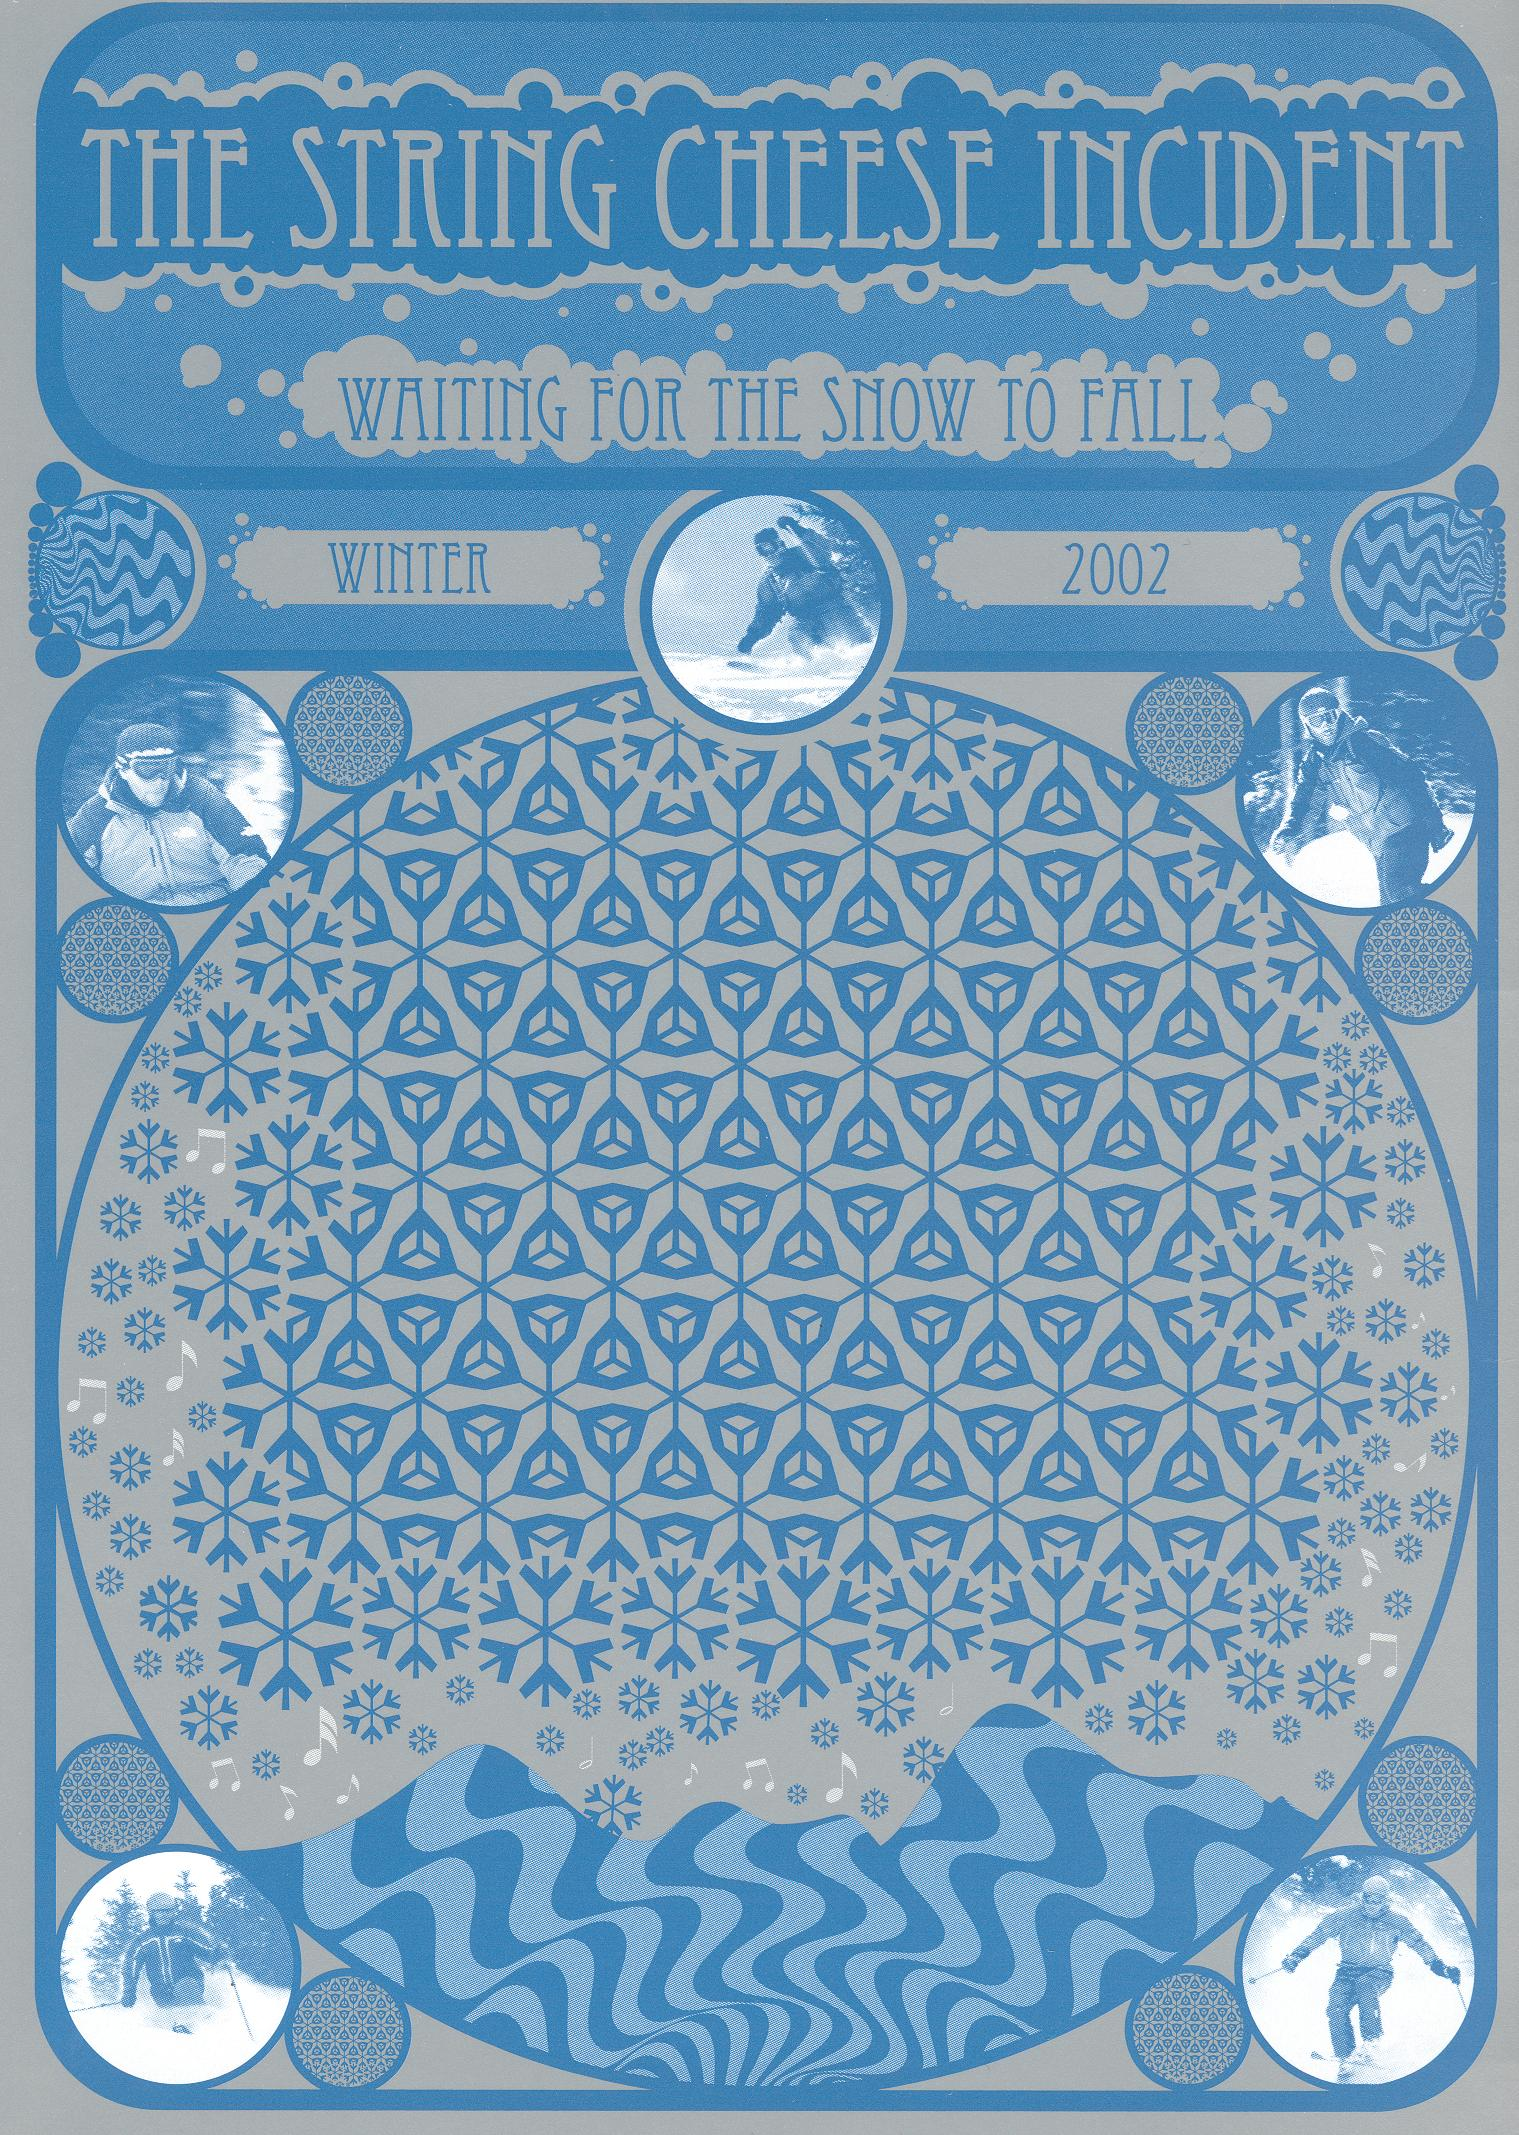 The String Cheese Incident: Waiting for the Snow to Fall